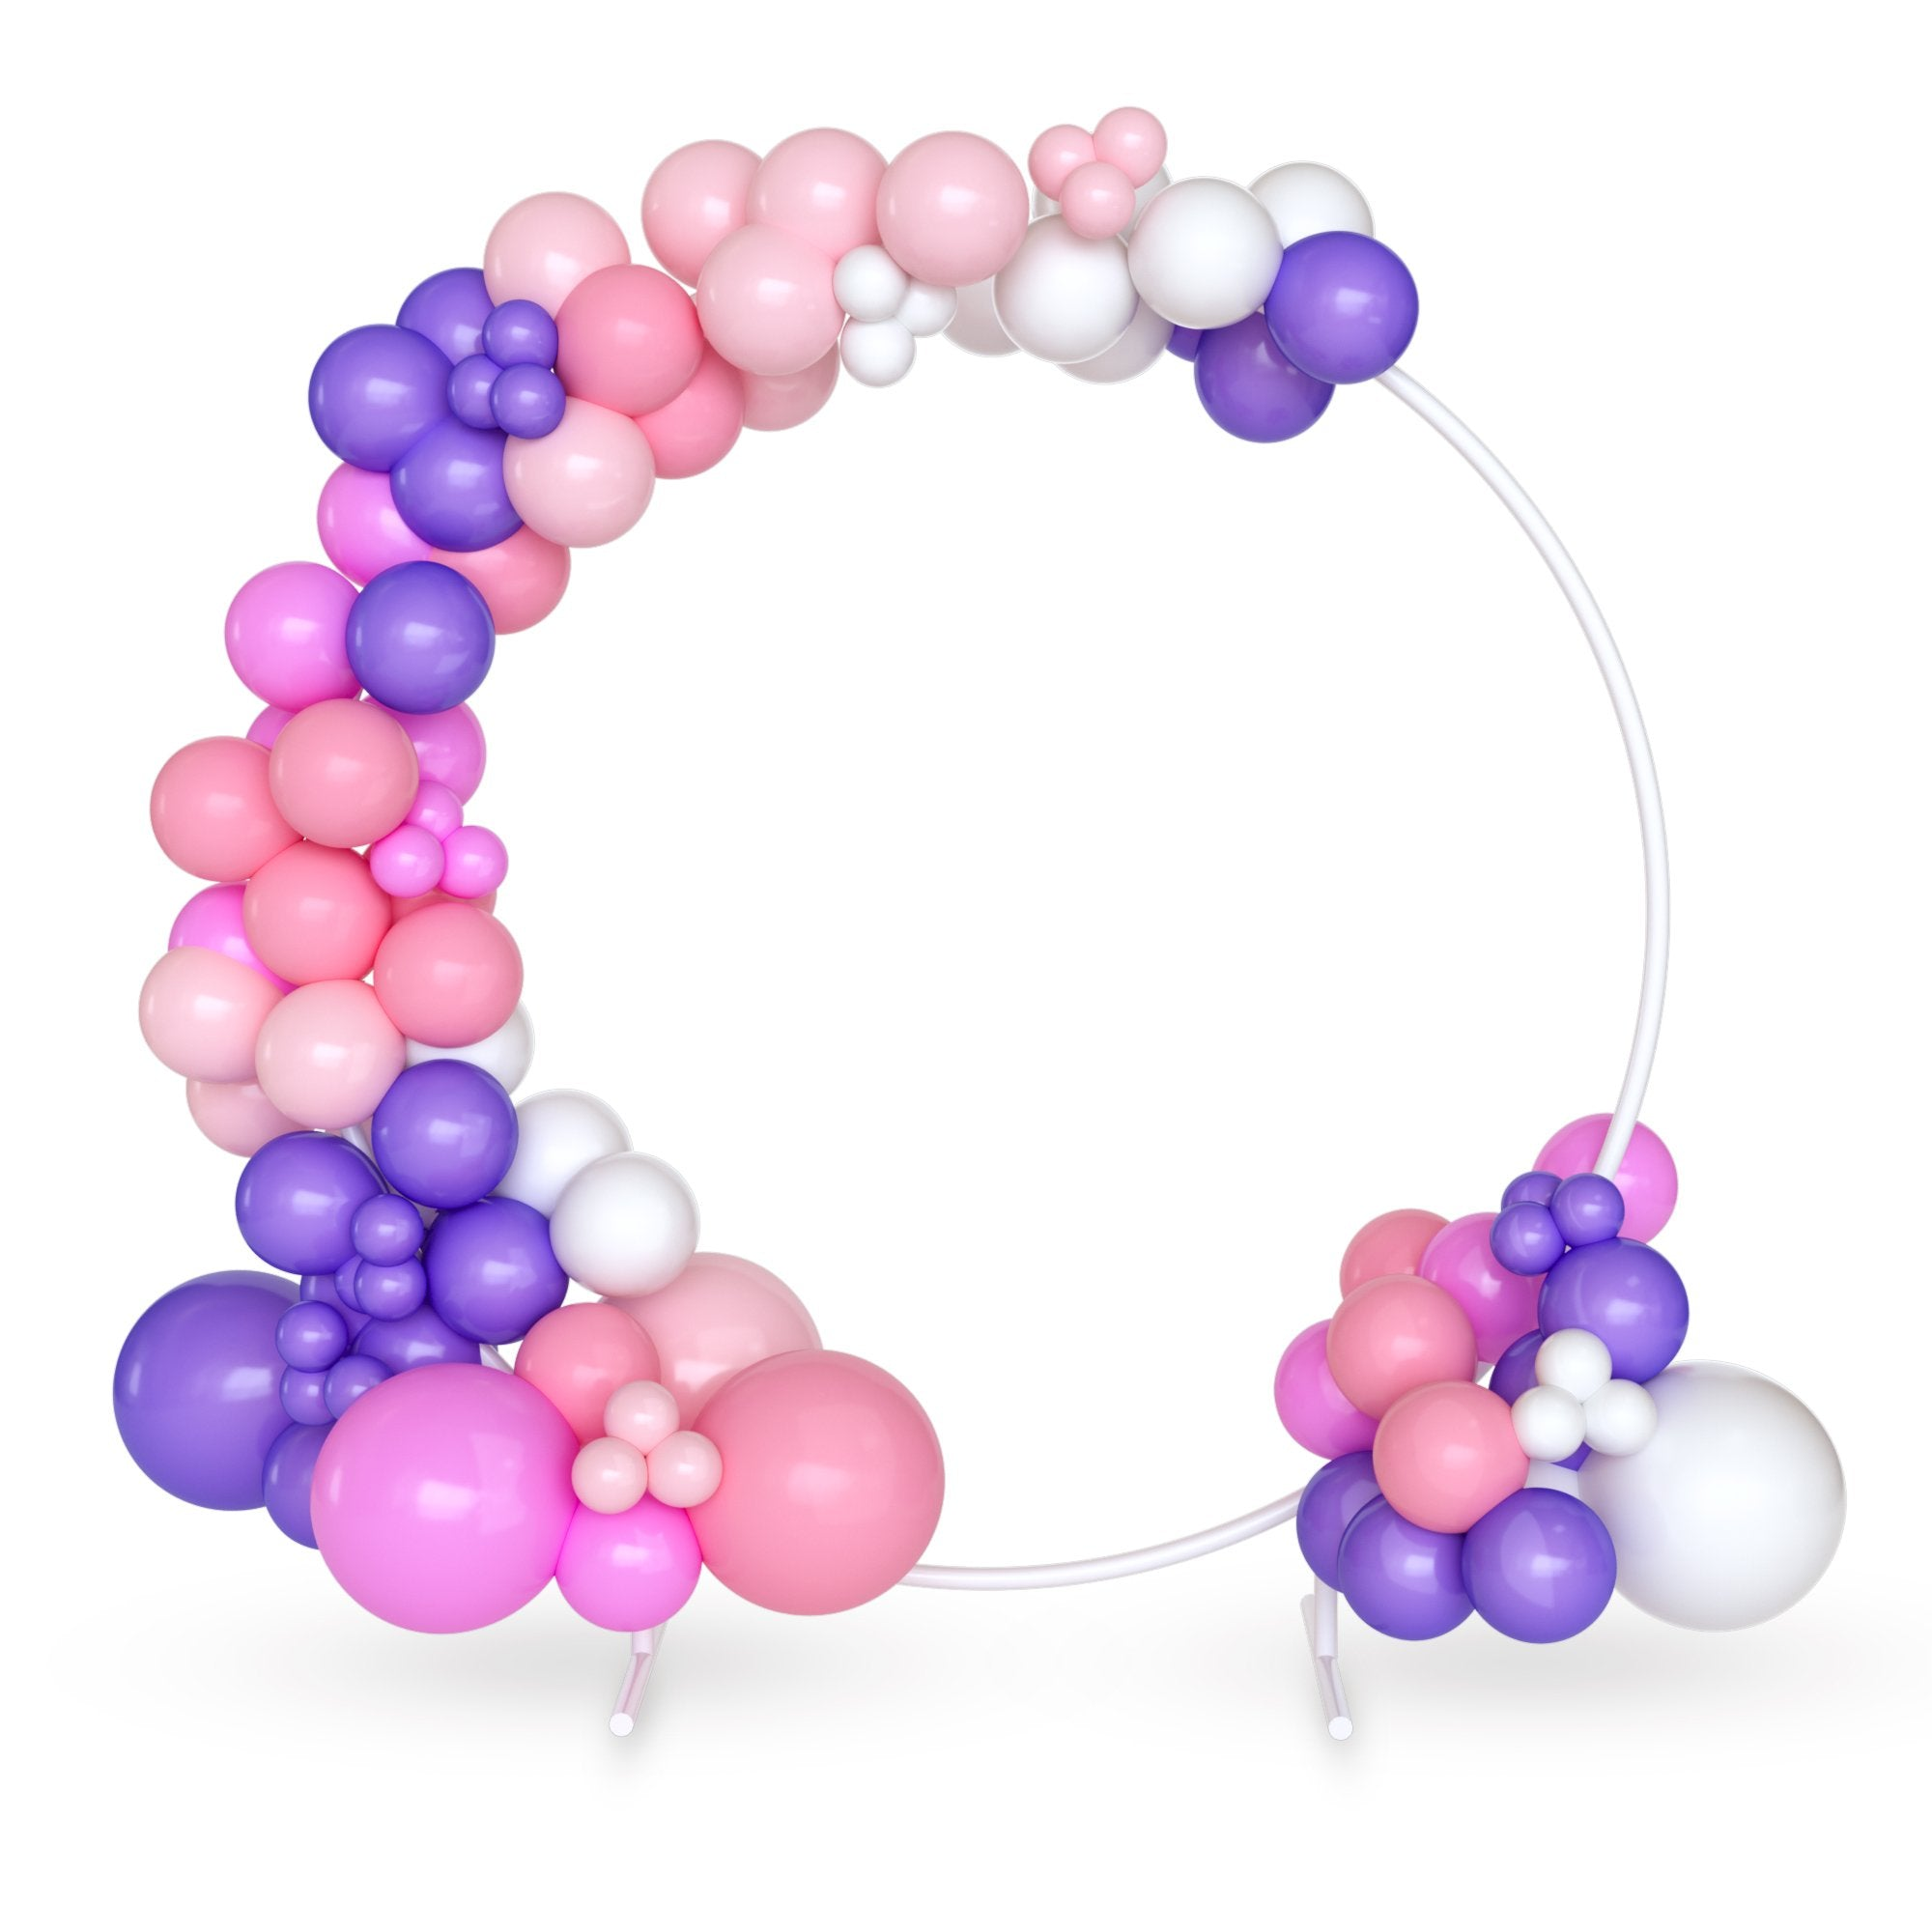 DIY 16 ft Balloon Arch Garland Kit | Pink & Purple | 120 Balloons | Birthday Parties, Baby Showers, Gender Reveals | TUR Party Supplies